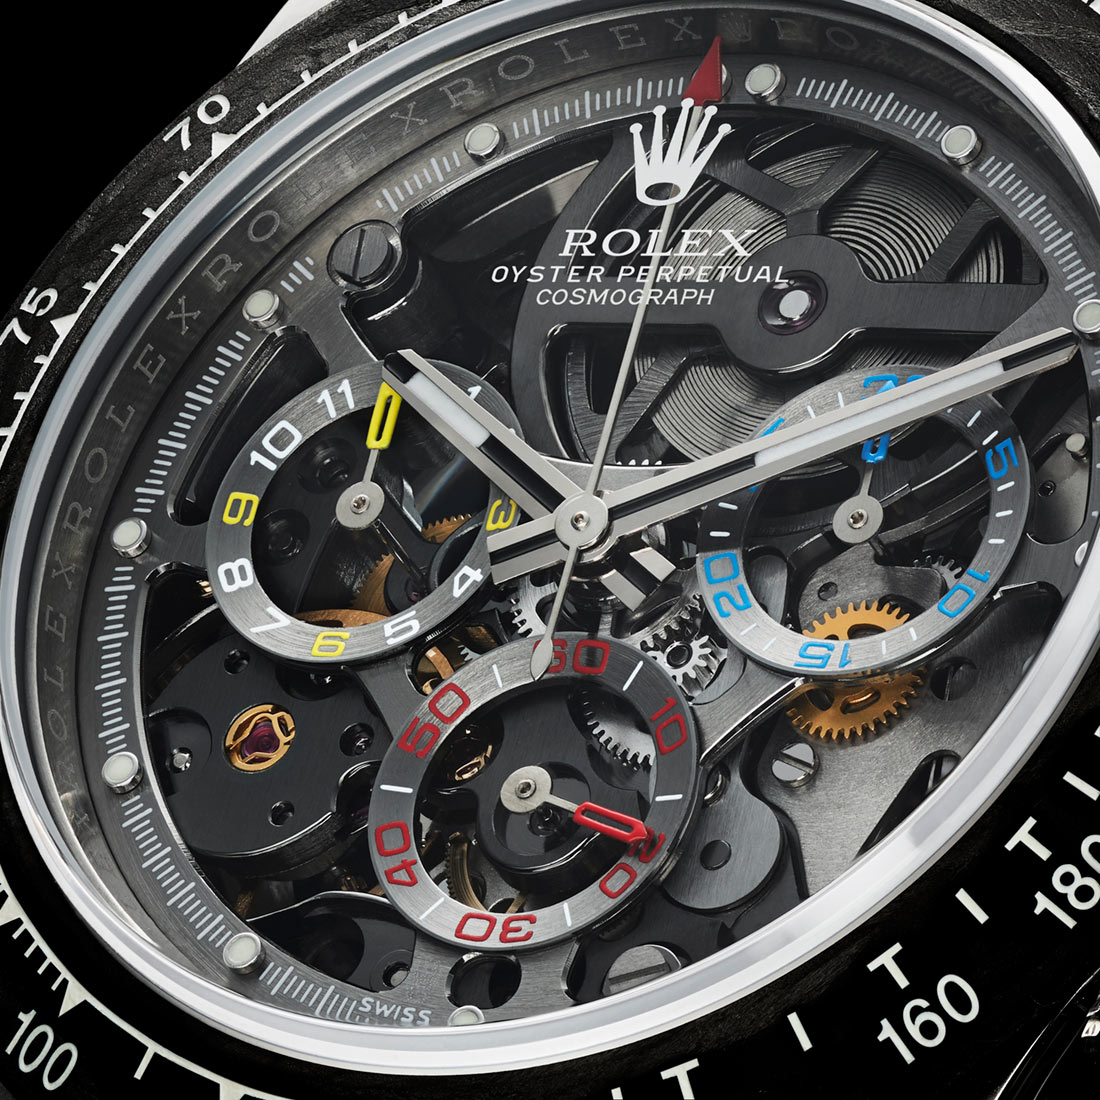 The limited replica Rolex watches have skeleton dials.